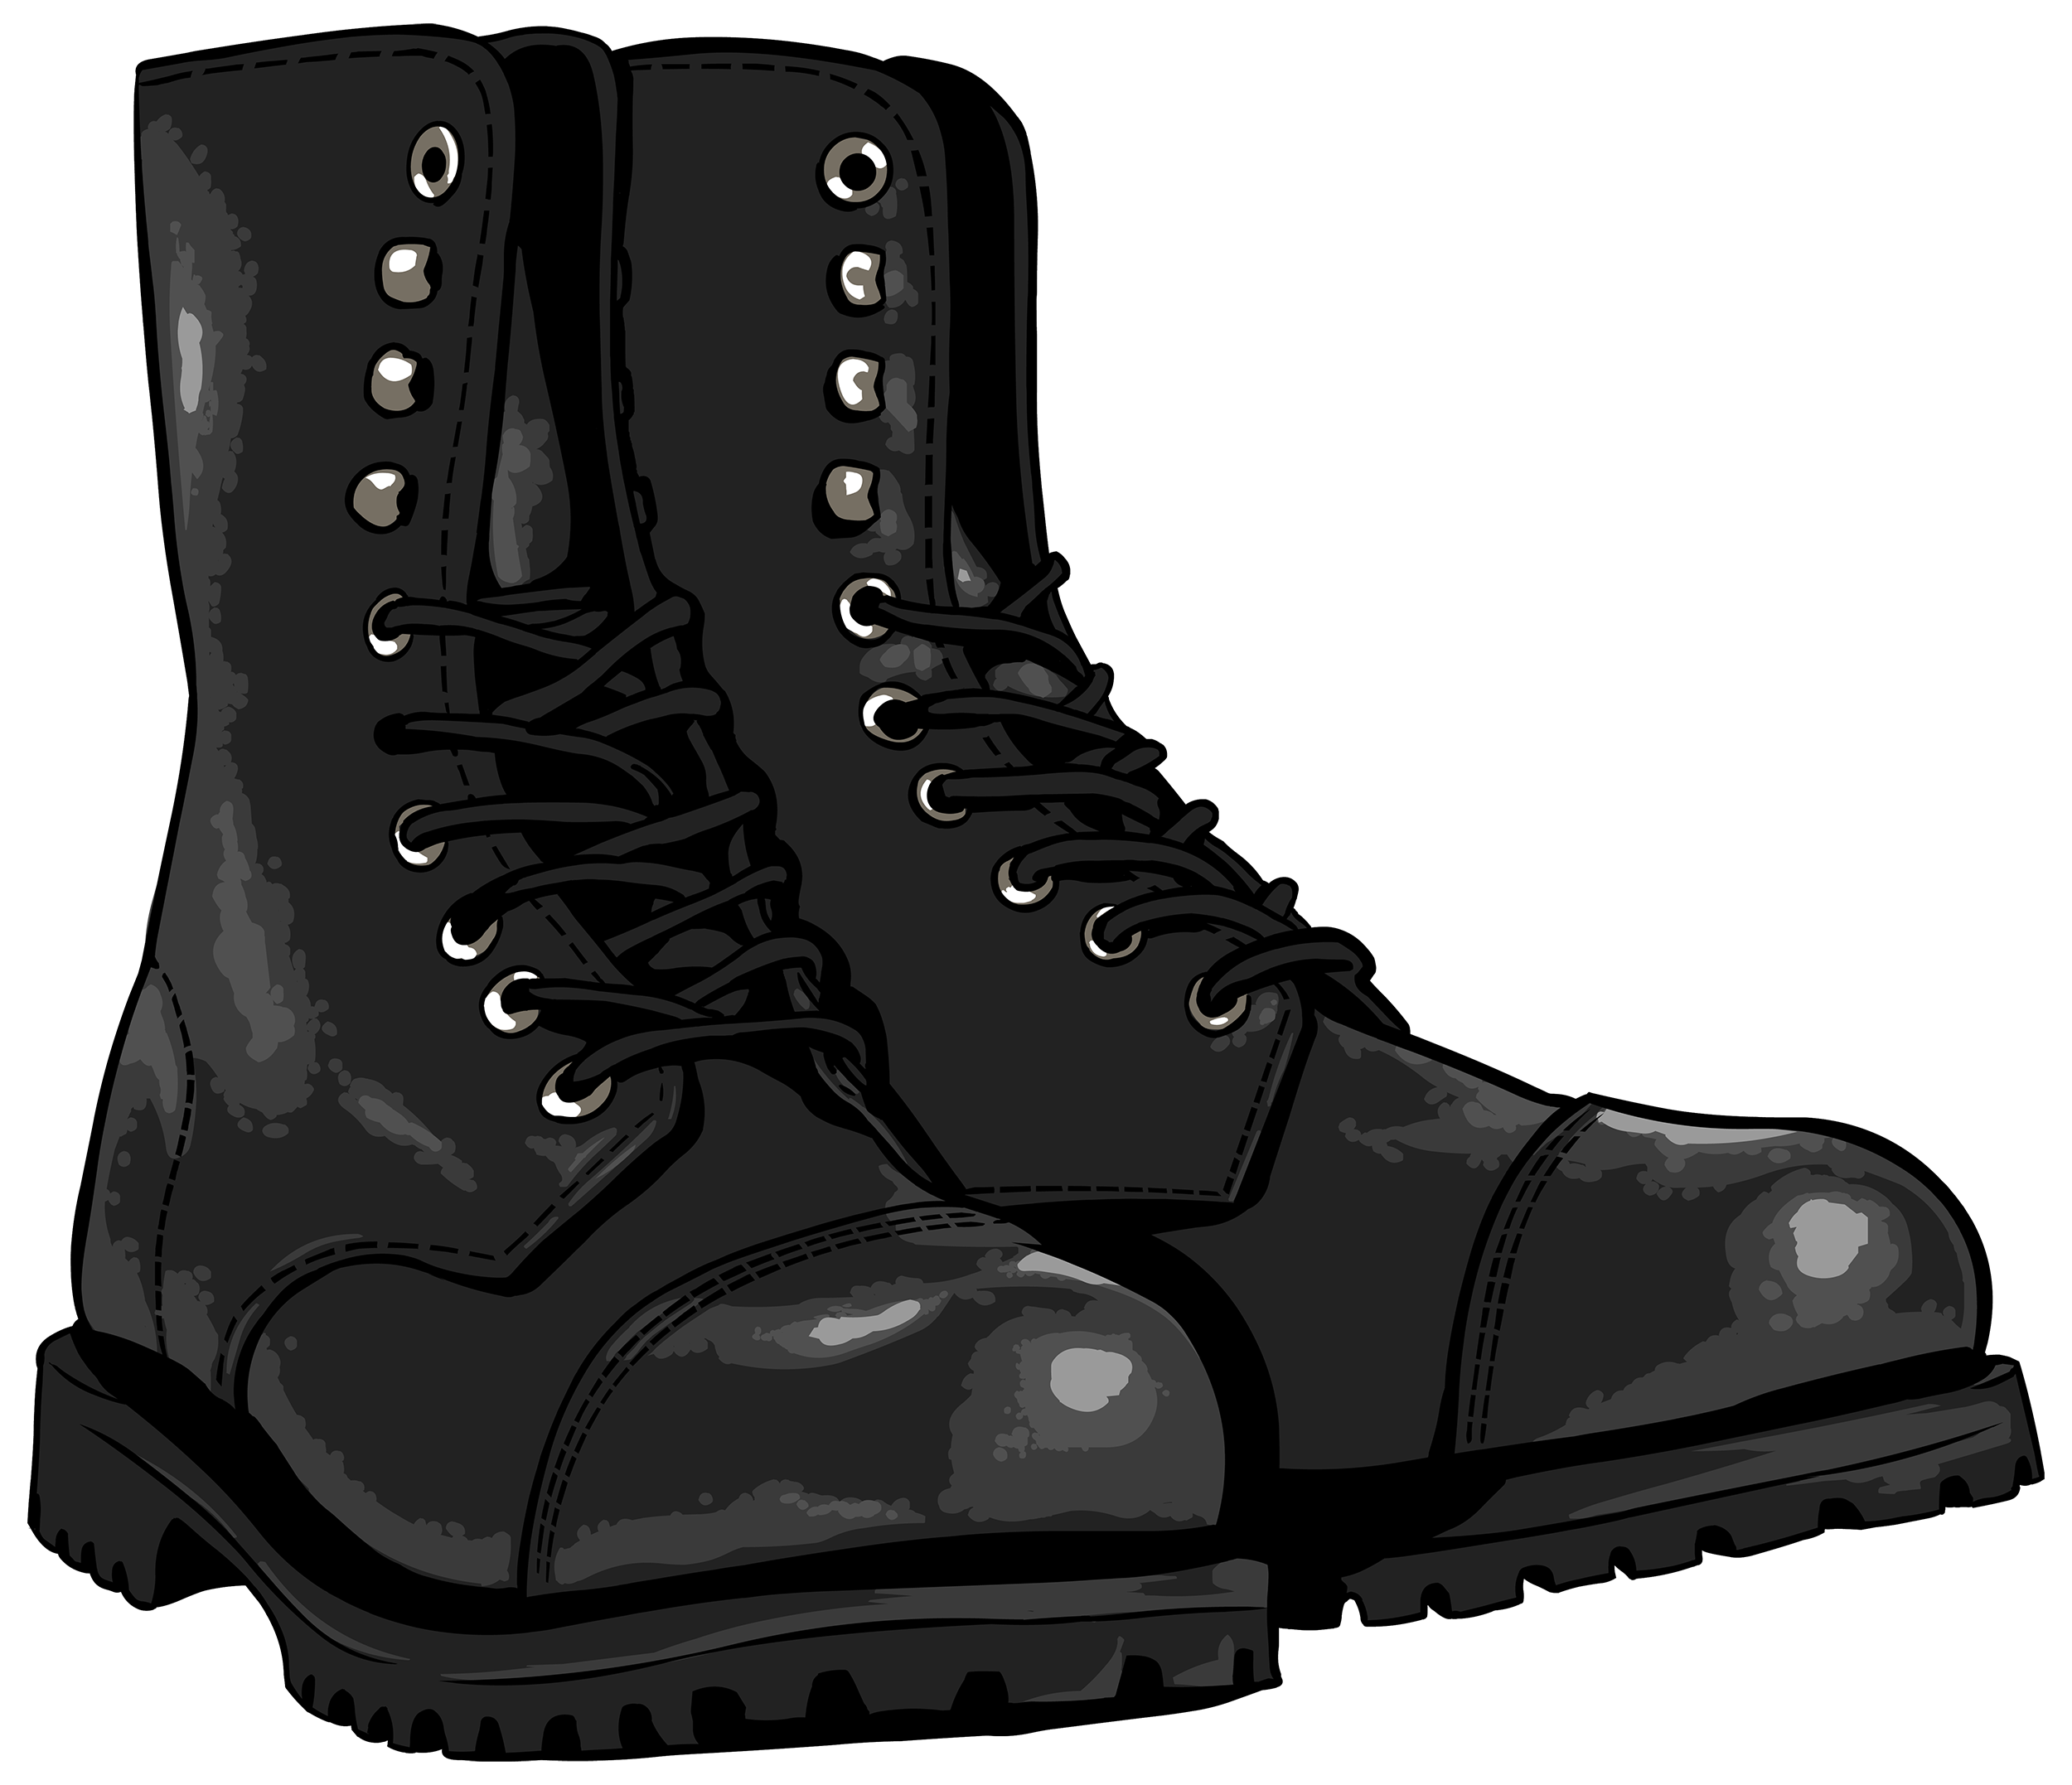 Boots Clipart Png.